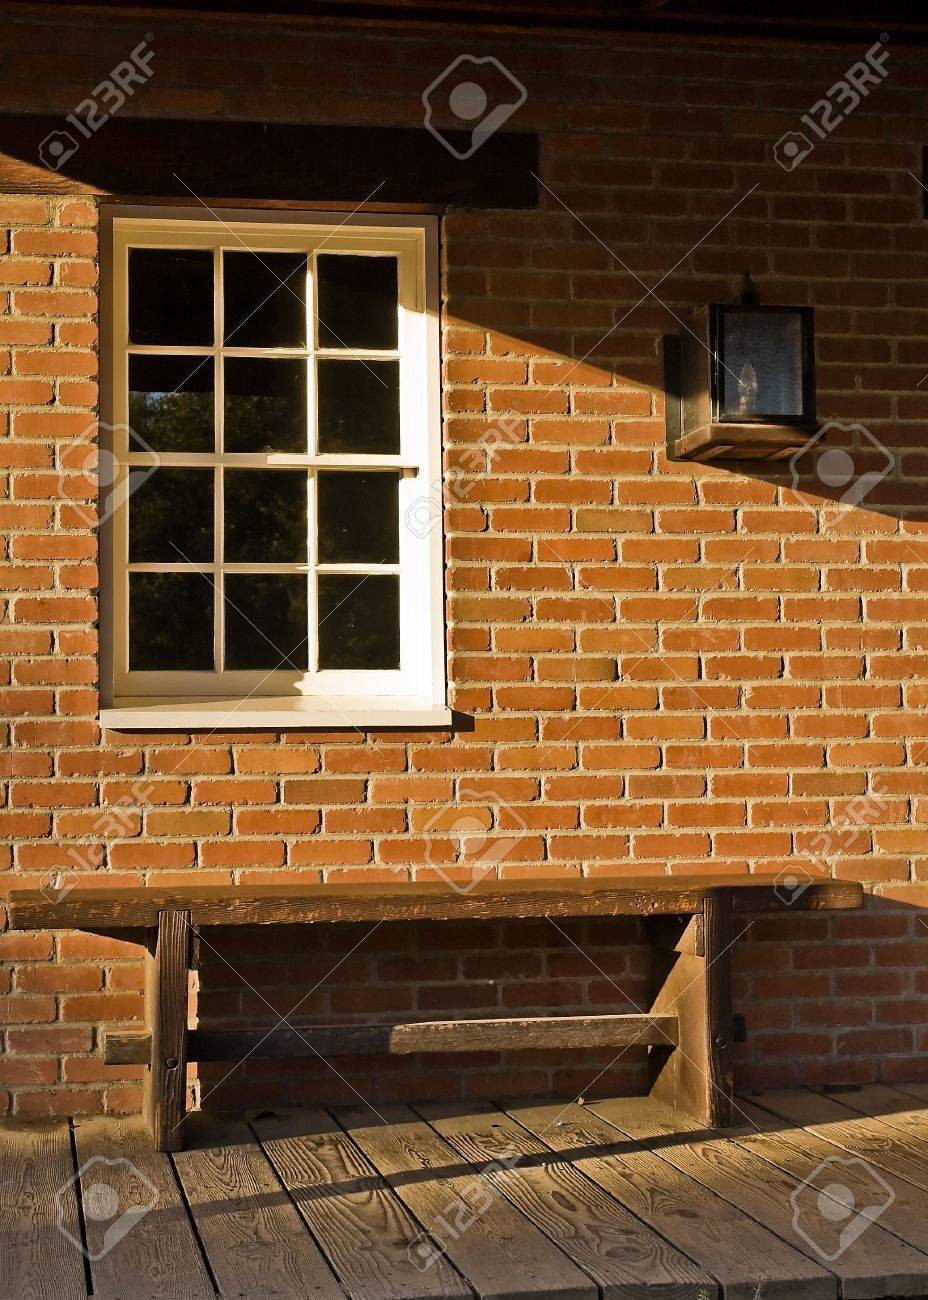 A Wooden Bench White Paned Window And A Brick Wall In Front Stock Photo Picture And Royalty Free Image Image 3124592